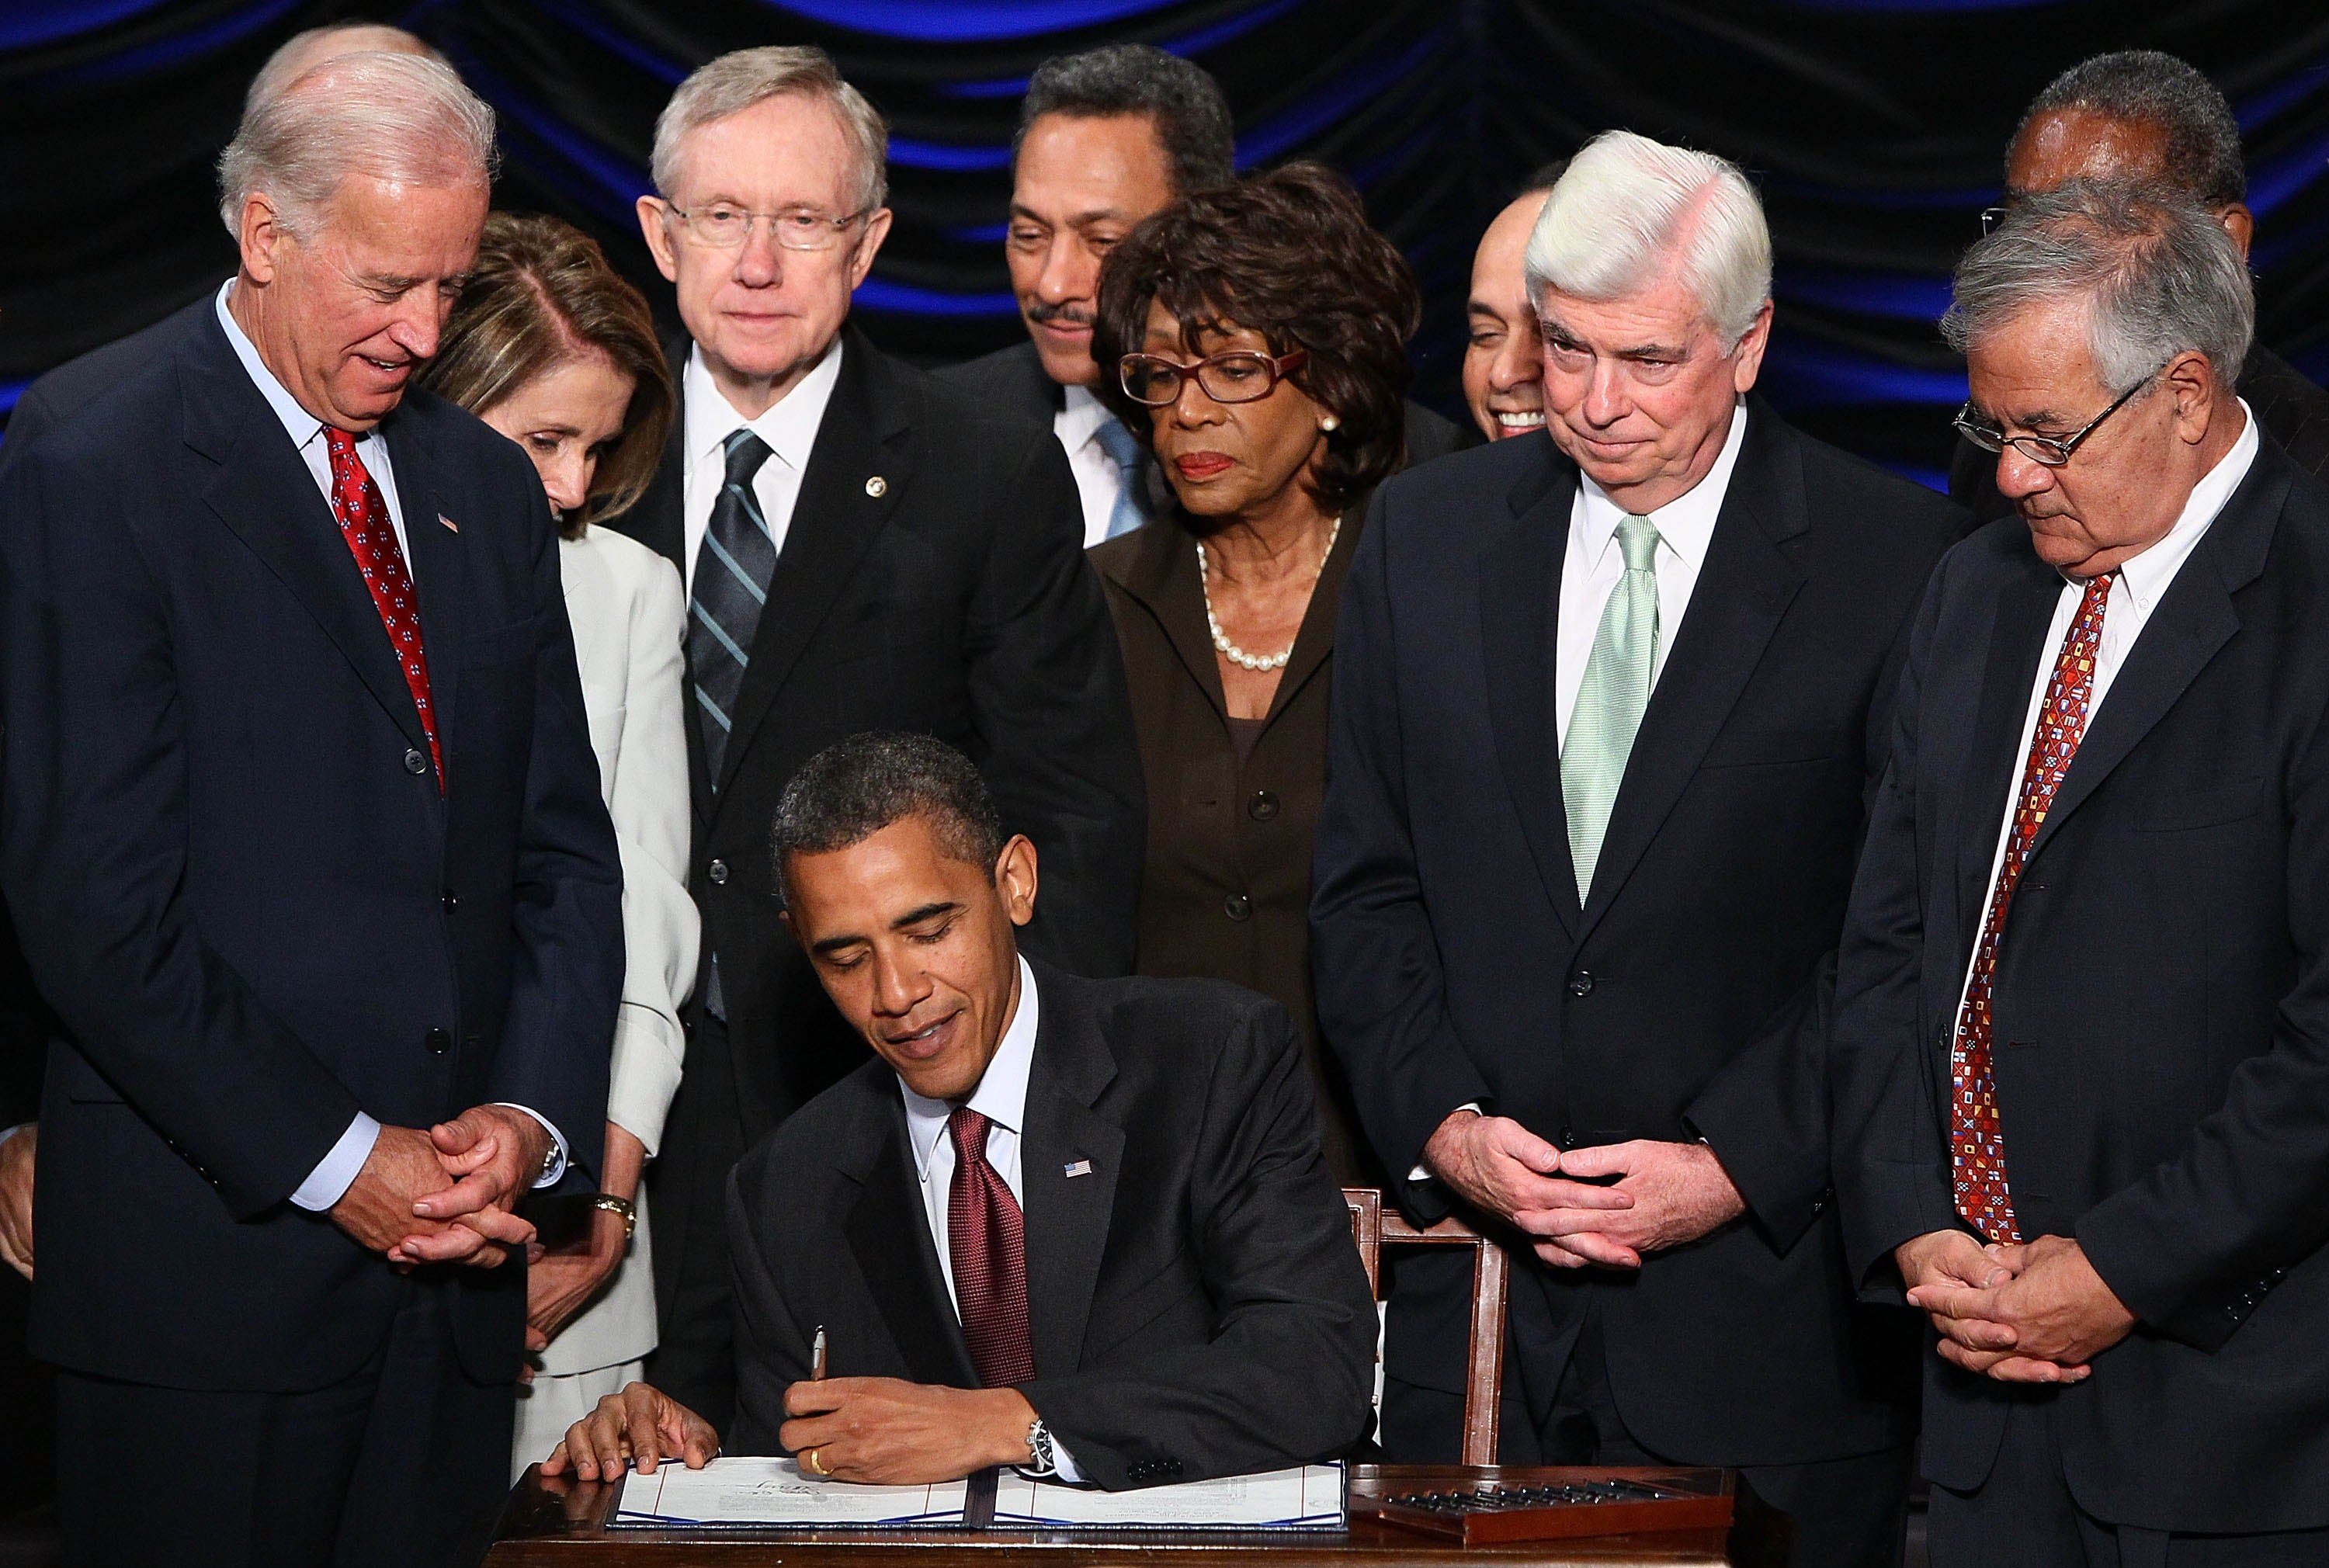 Obama signs Dodd-Frank in 2010. (Photo: OwenDB/Black Star)